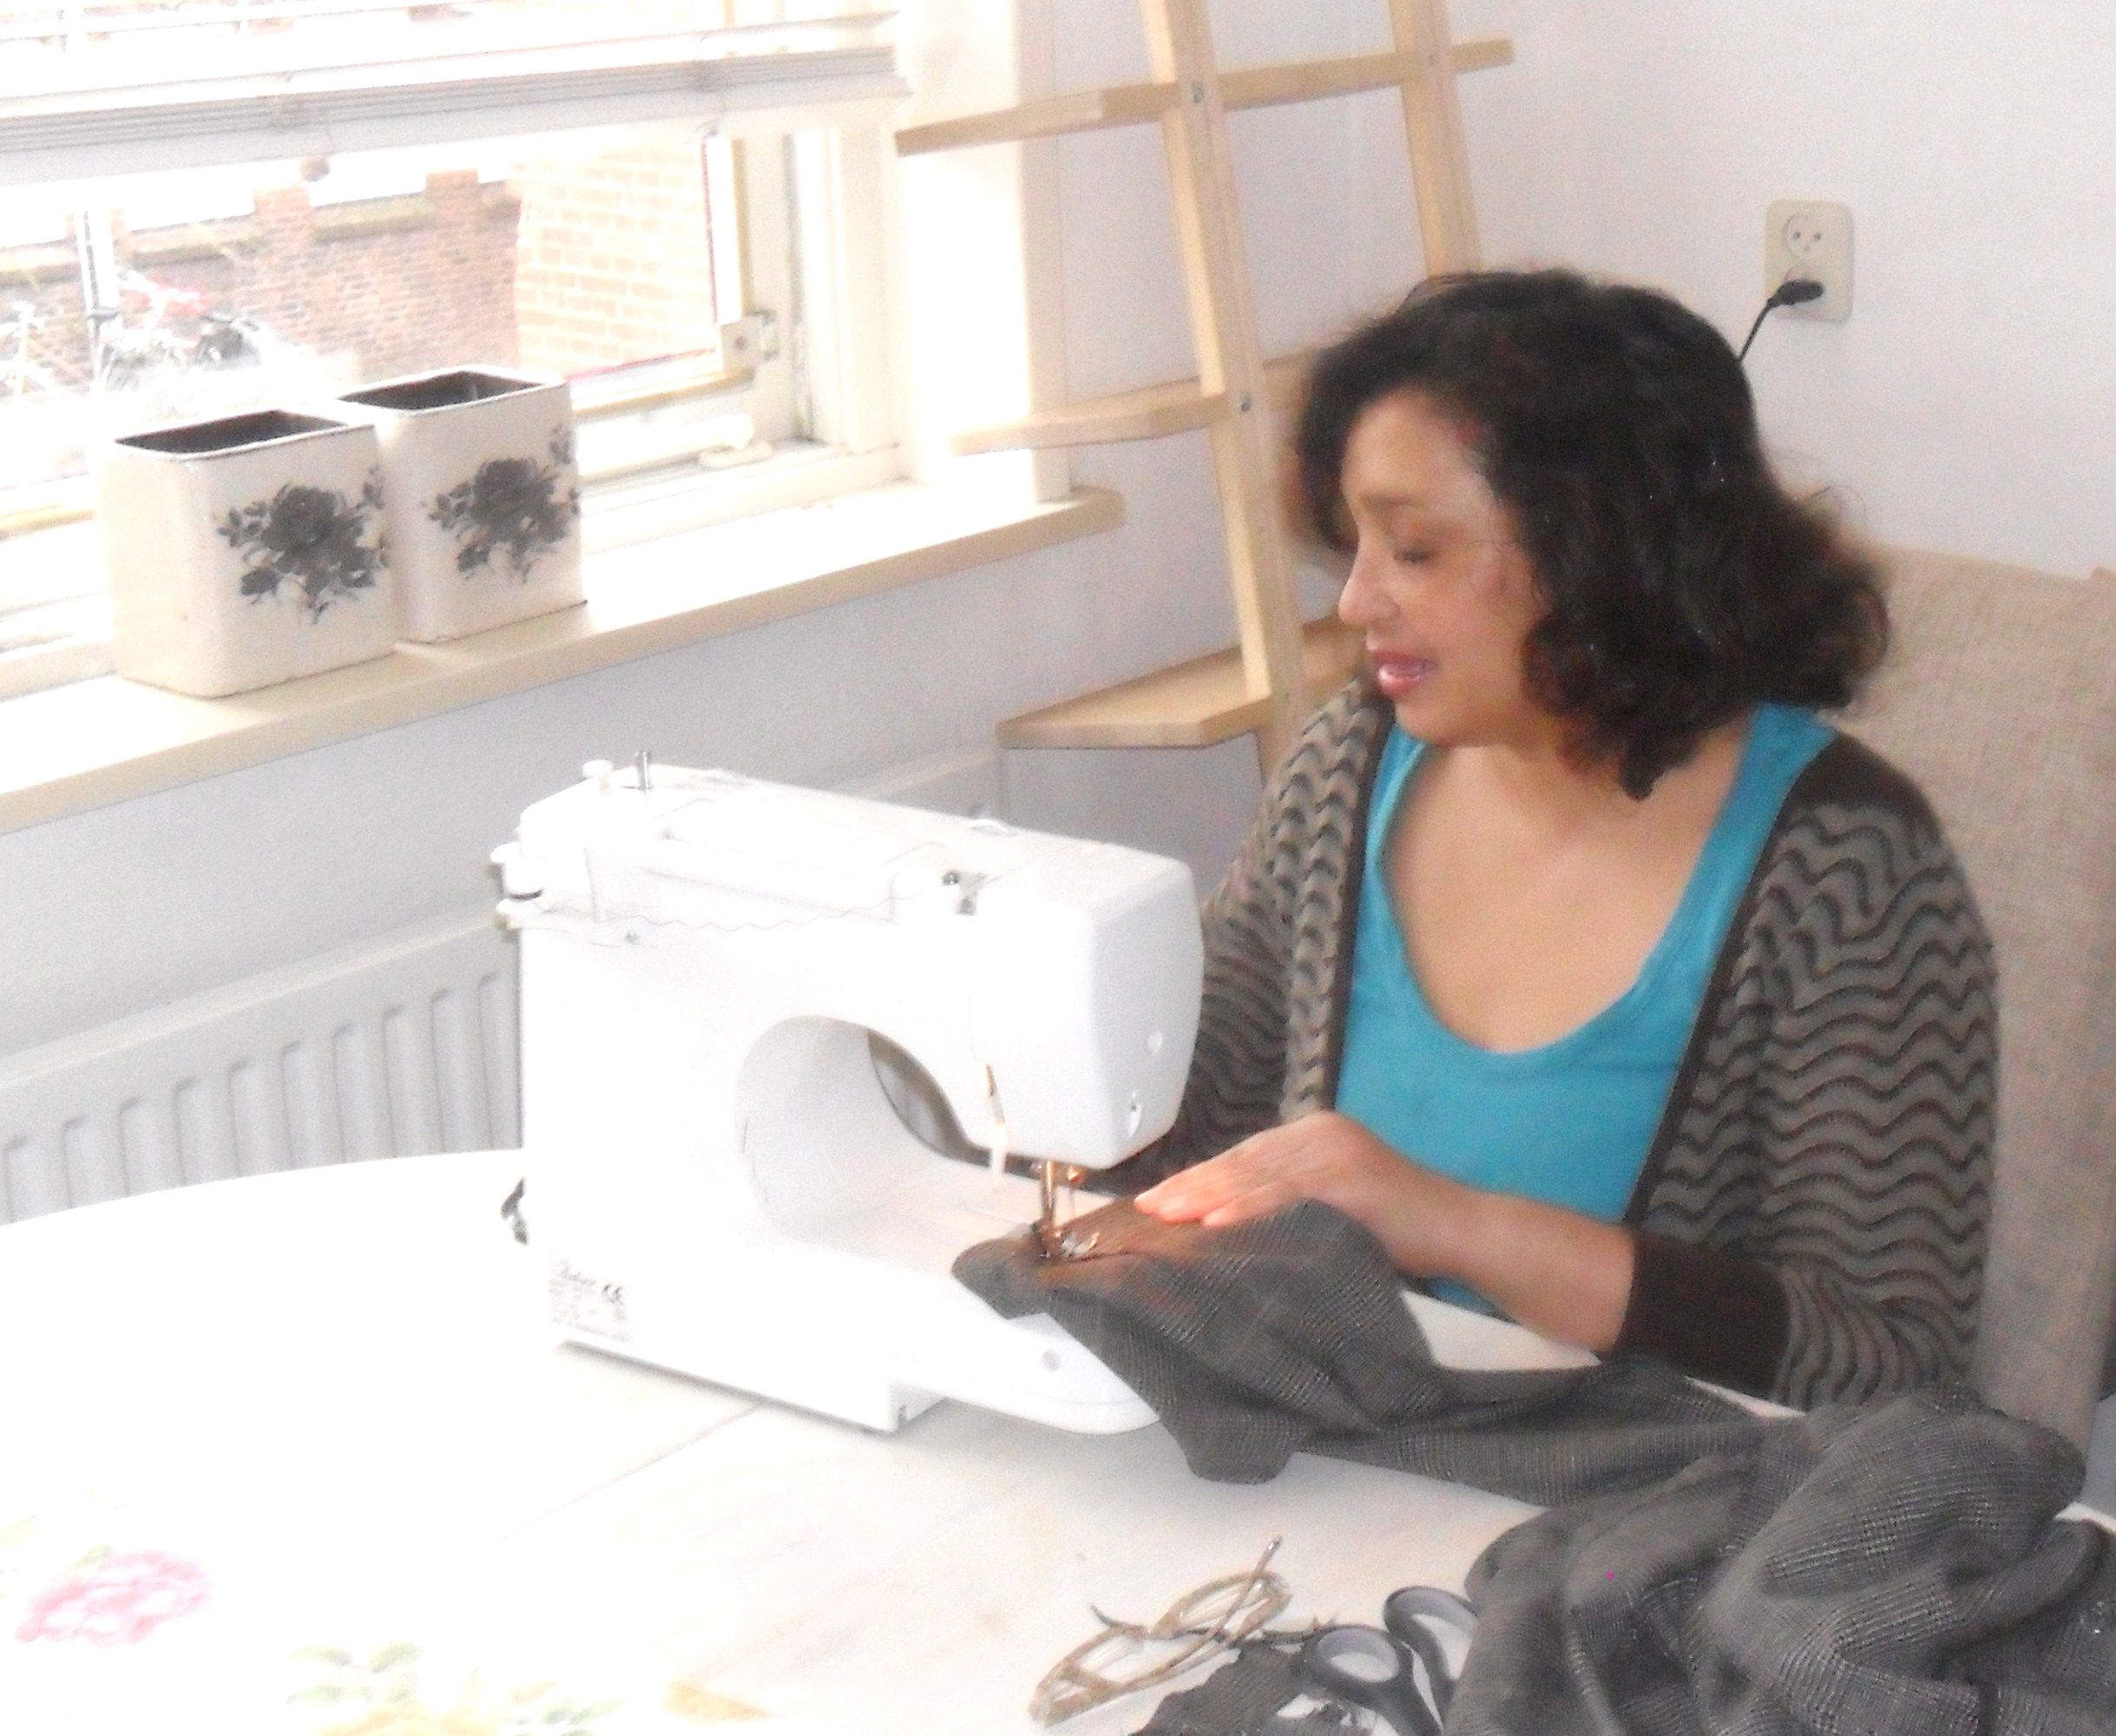 sewing at home